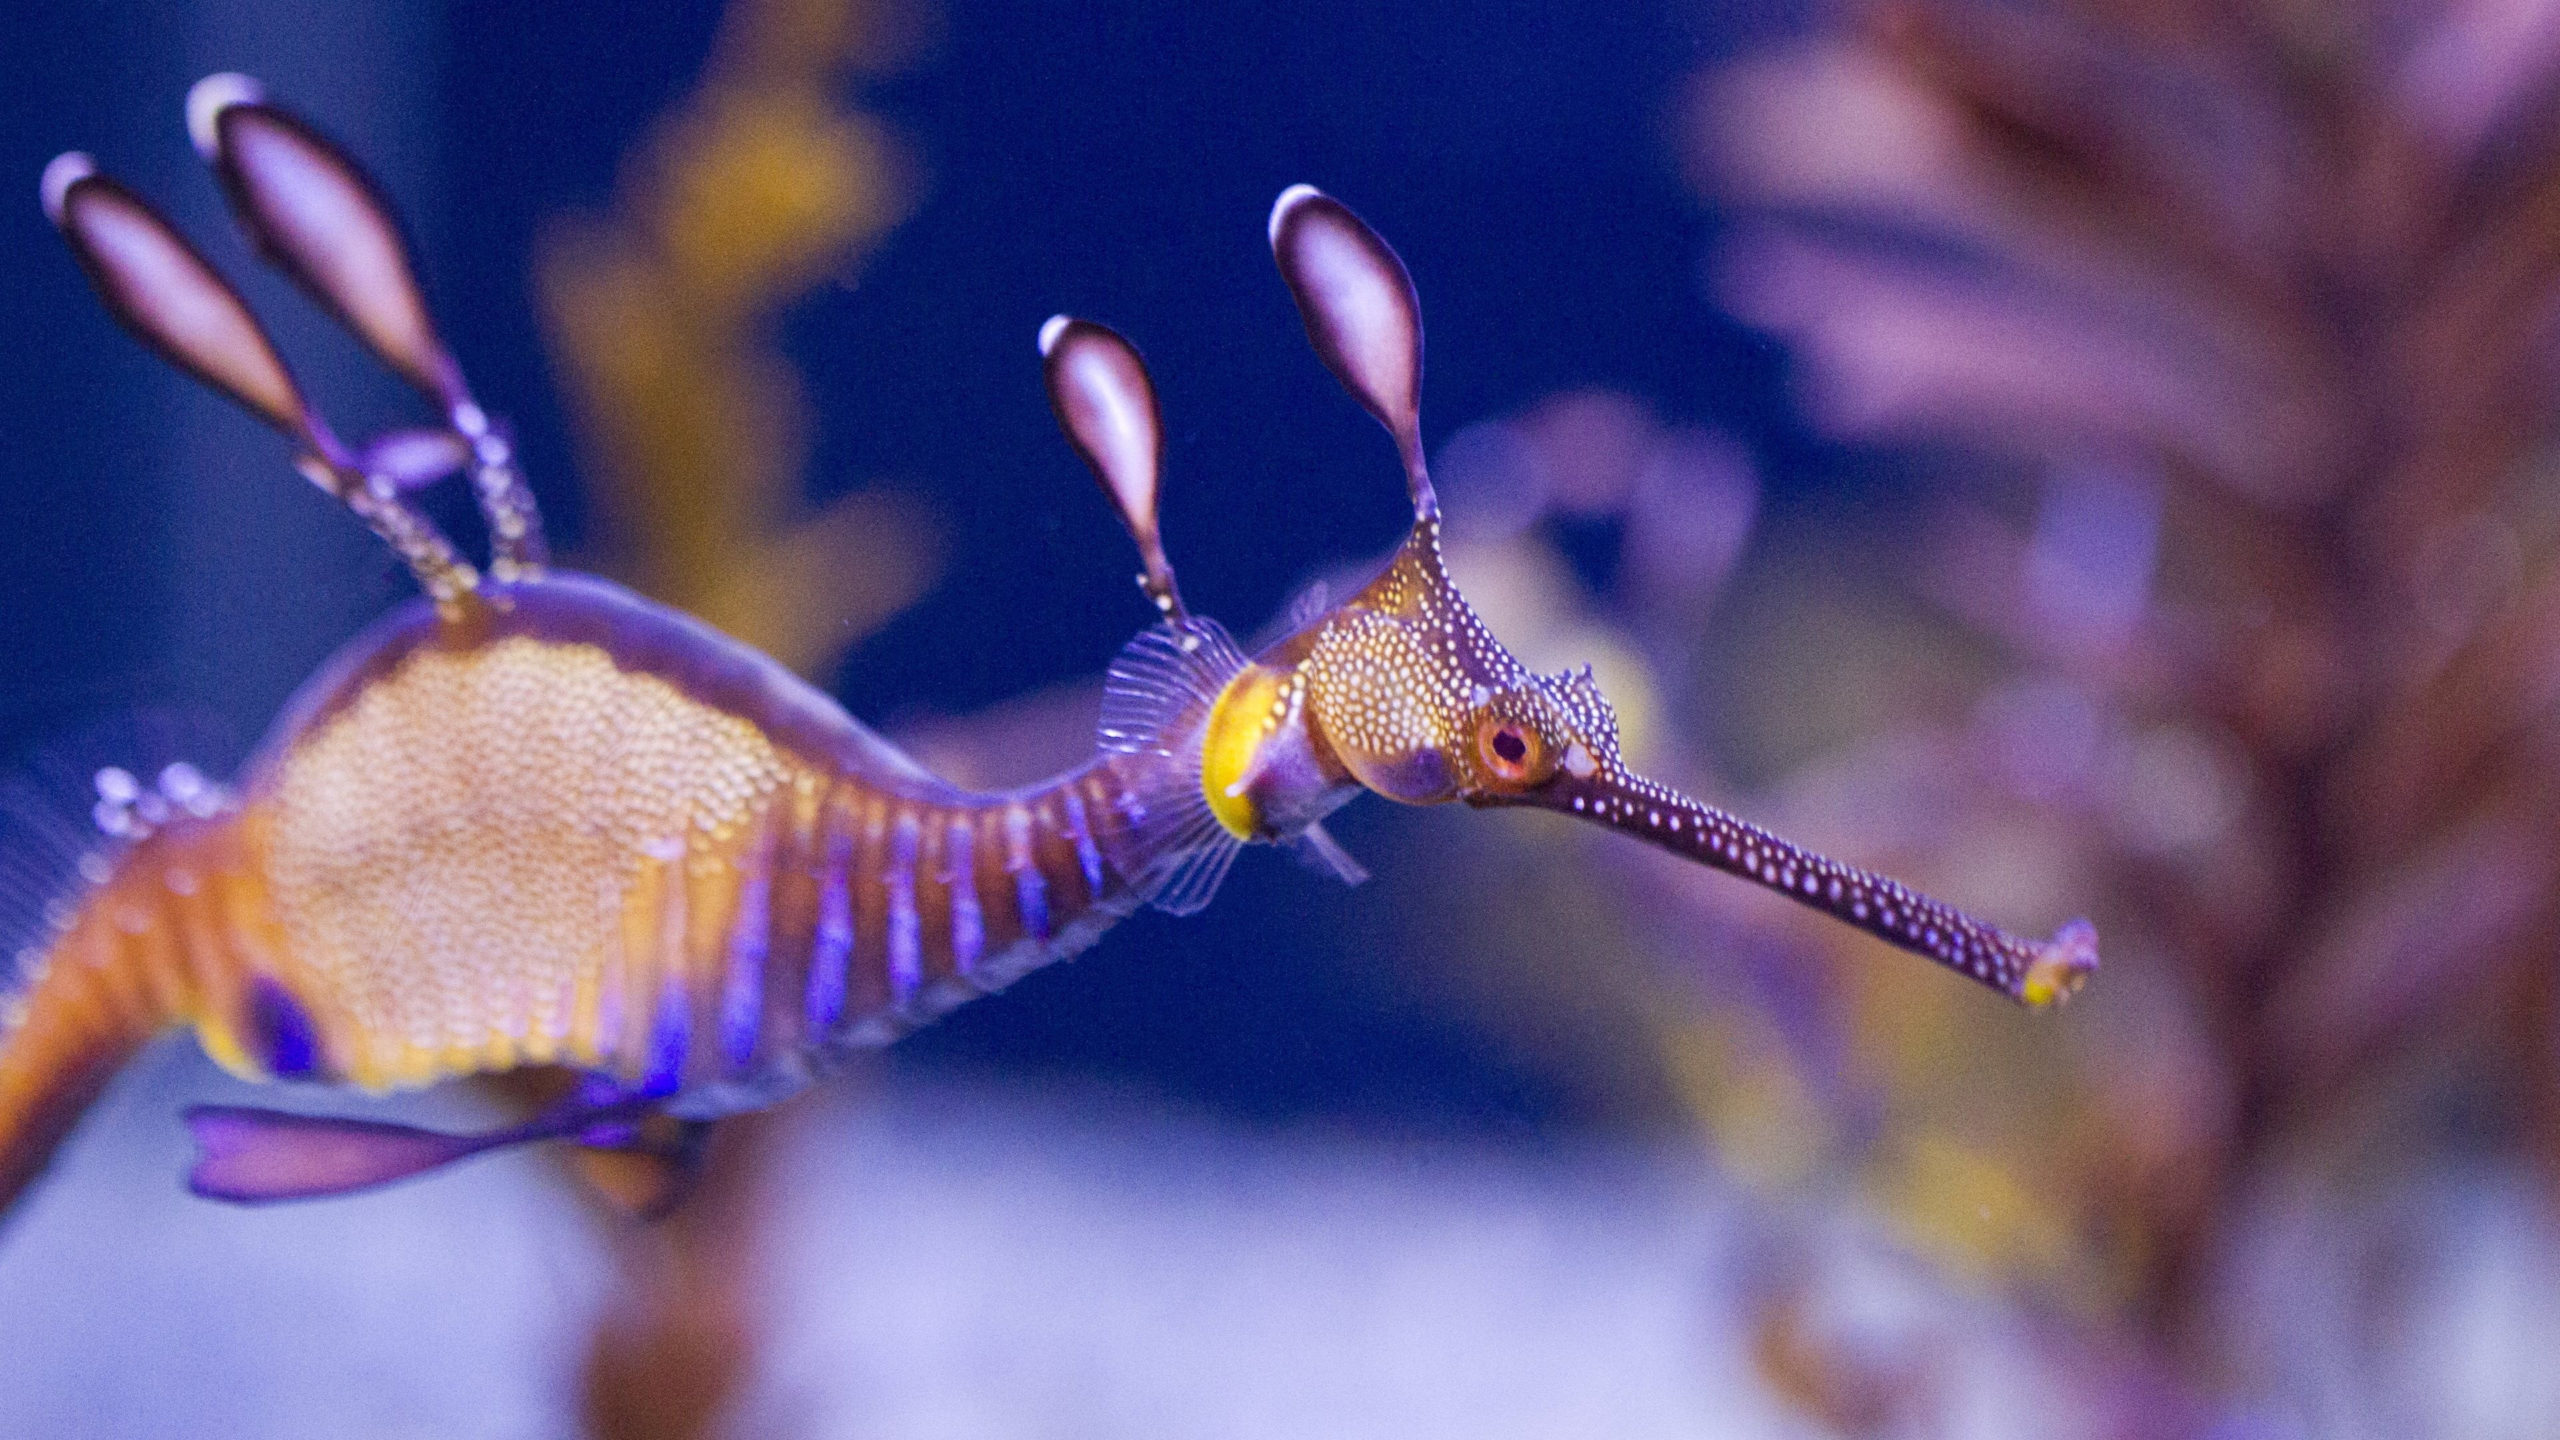 seahorse is a fish or mammal